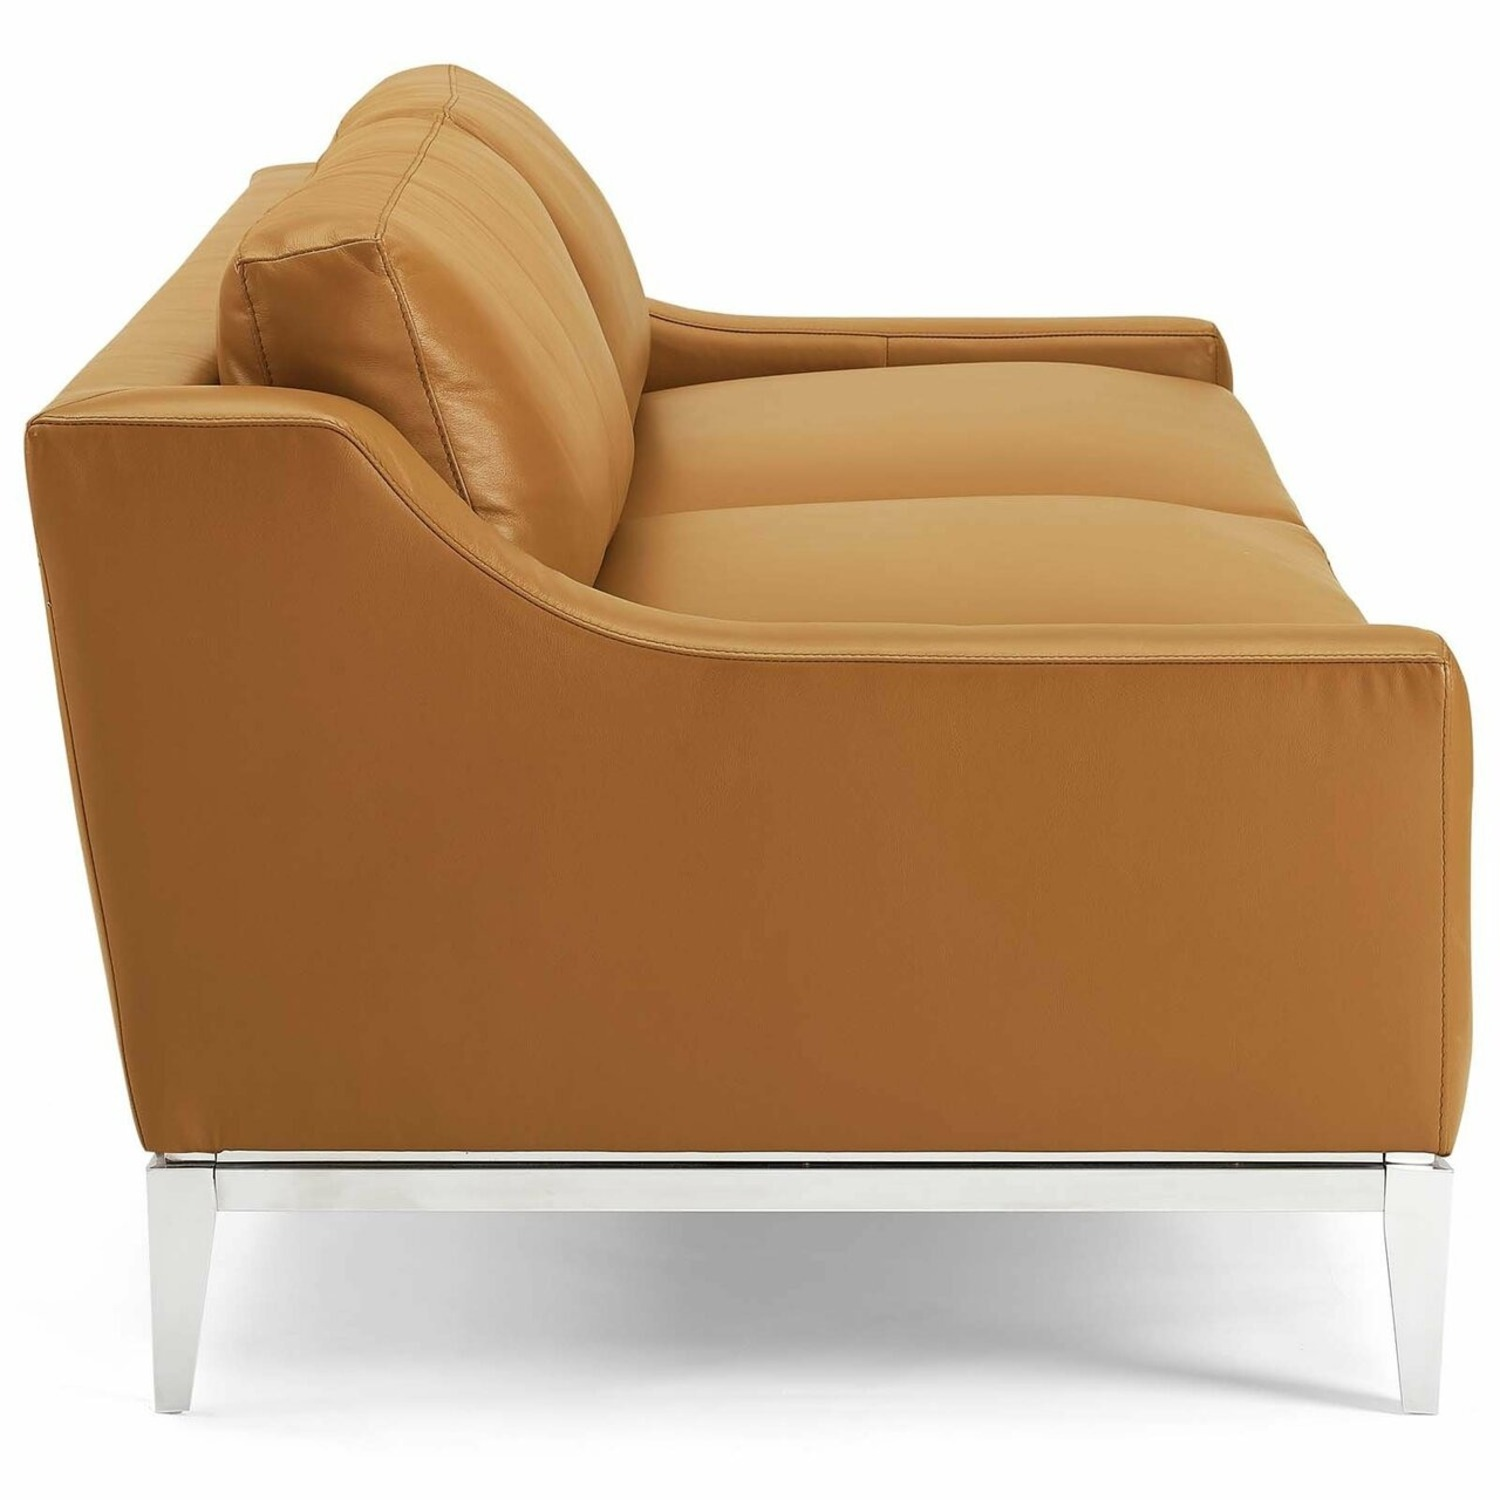 Sofa In Tan Leather Upholstery W/ Steel Base - image-3